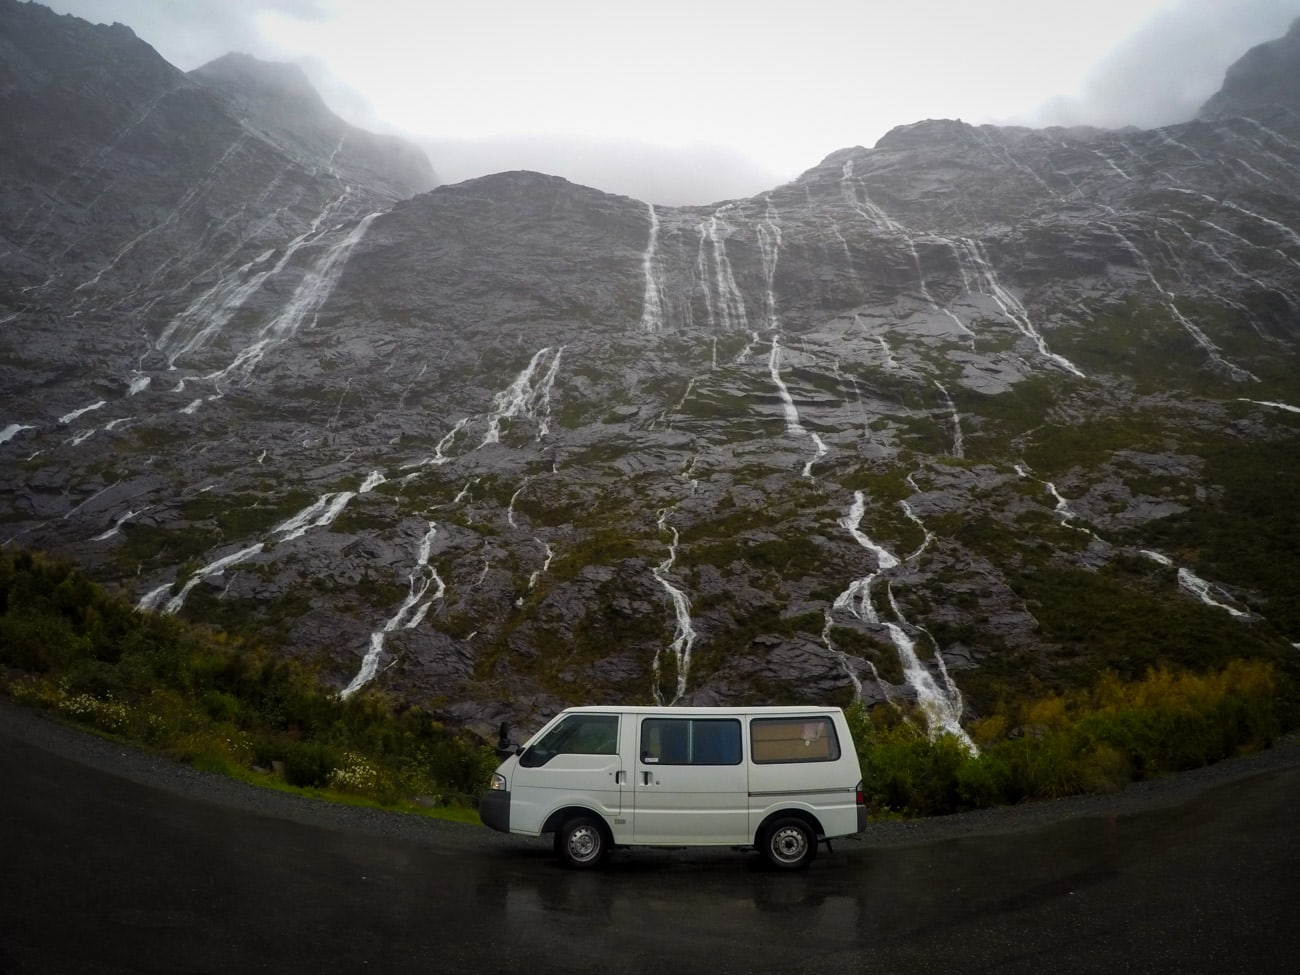 How to avoid rain droplets on your GoPro // Learn my favorite GoPro tips and tricks to improve your travel photography.